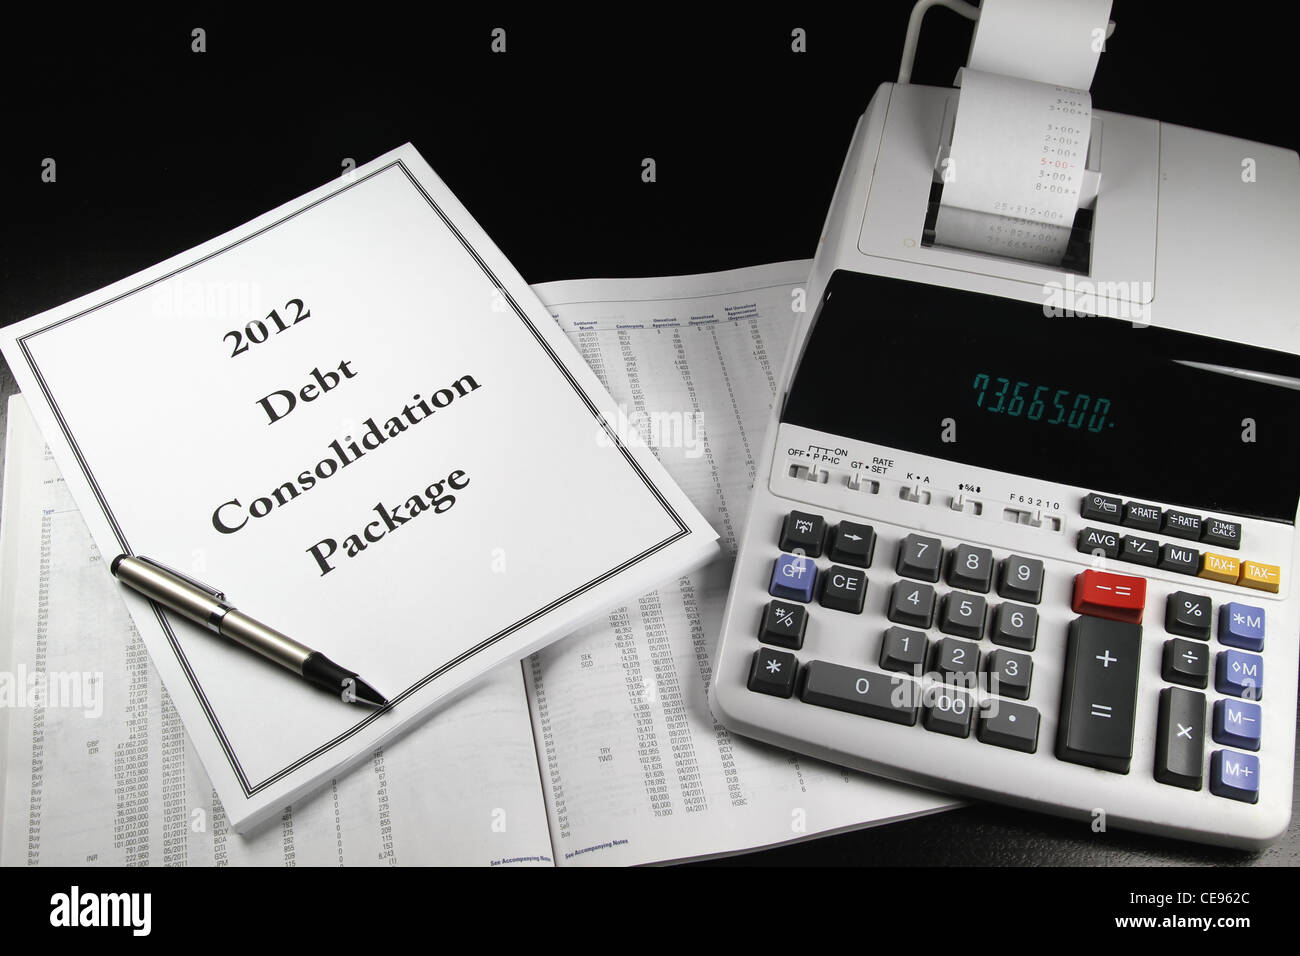 A 2012 debt consolidation package on top of a prospectus with a pen. - Stock Image